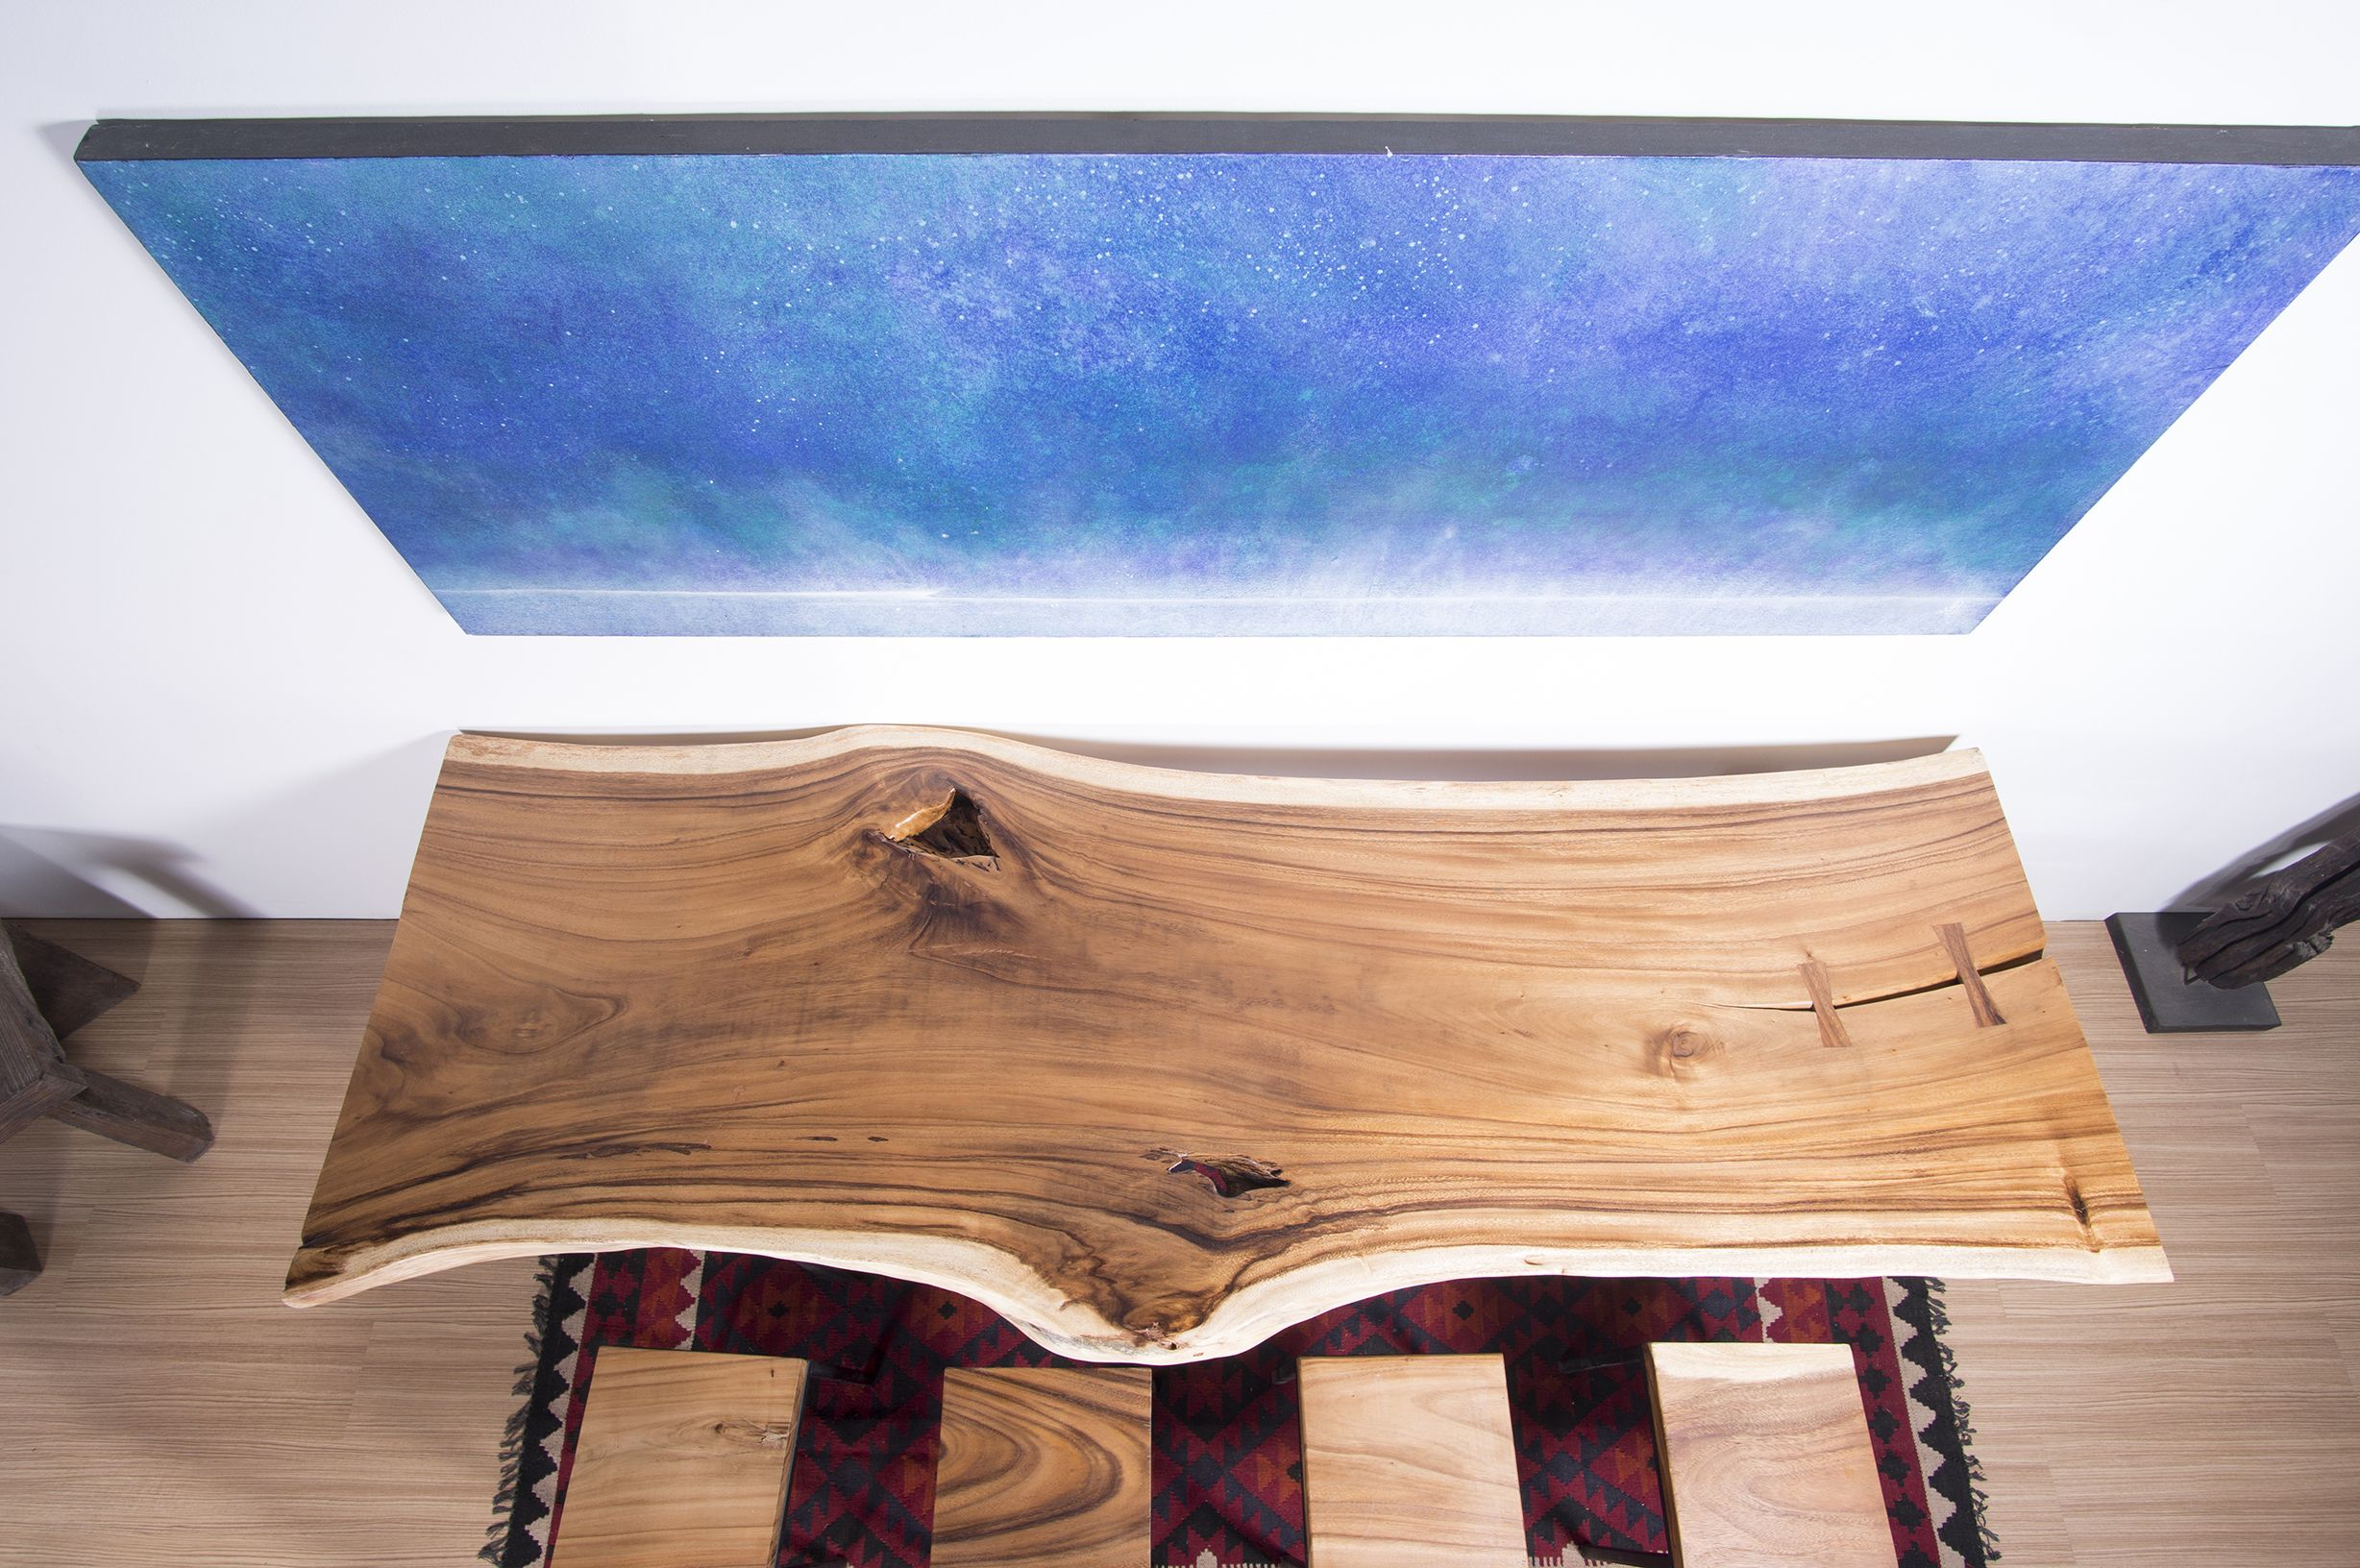 Buy A Custom Live Edge Wood Slab Table Ideal For Dining - Wood slab conference table